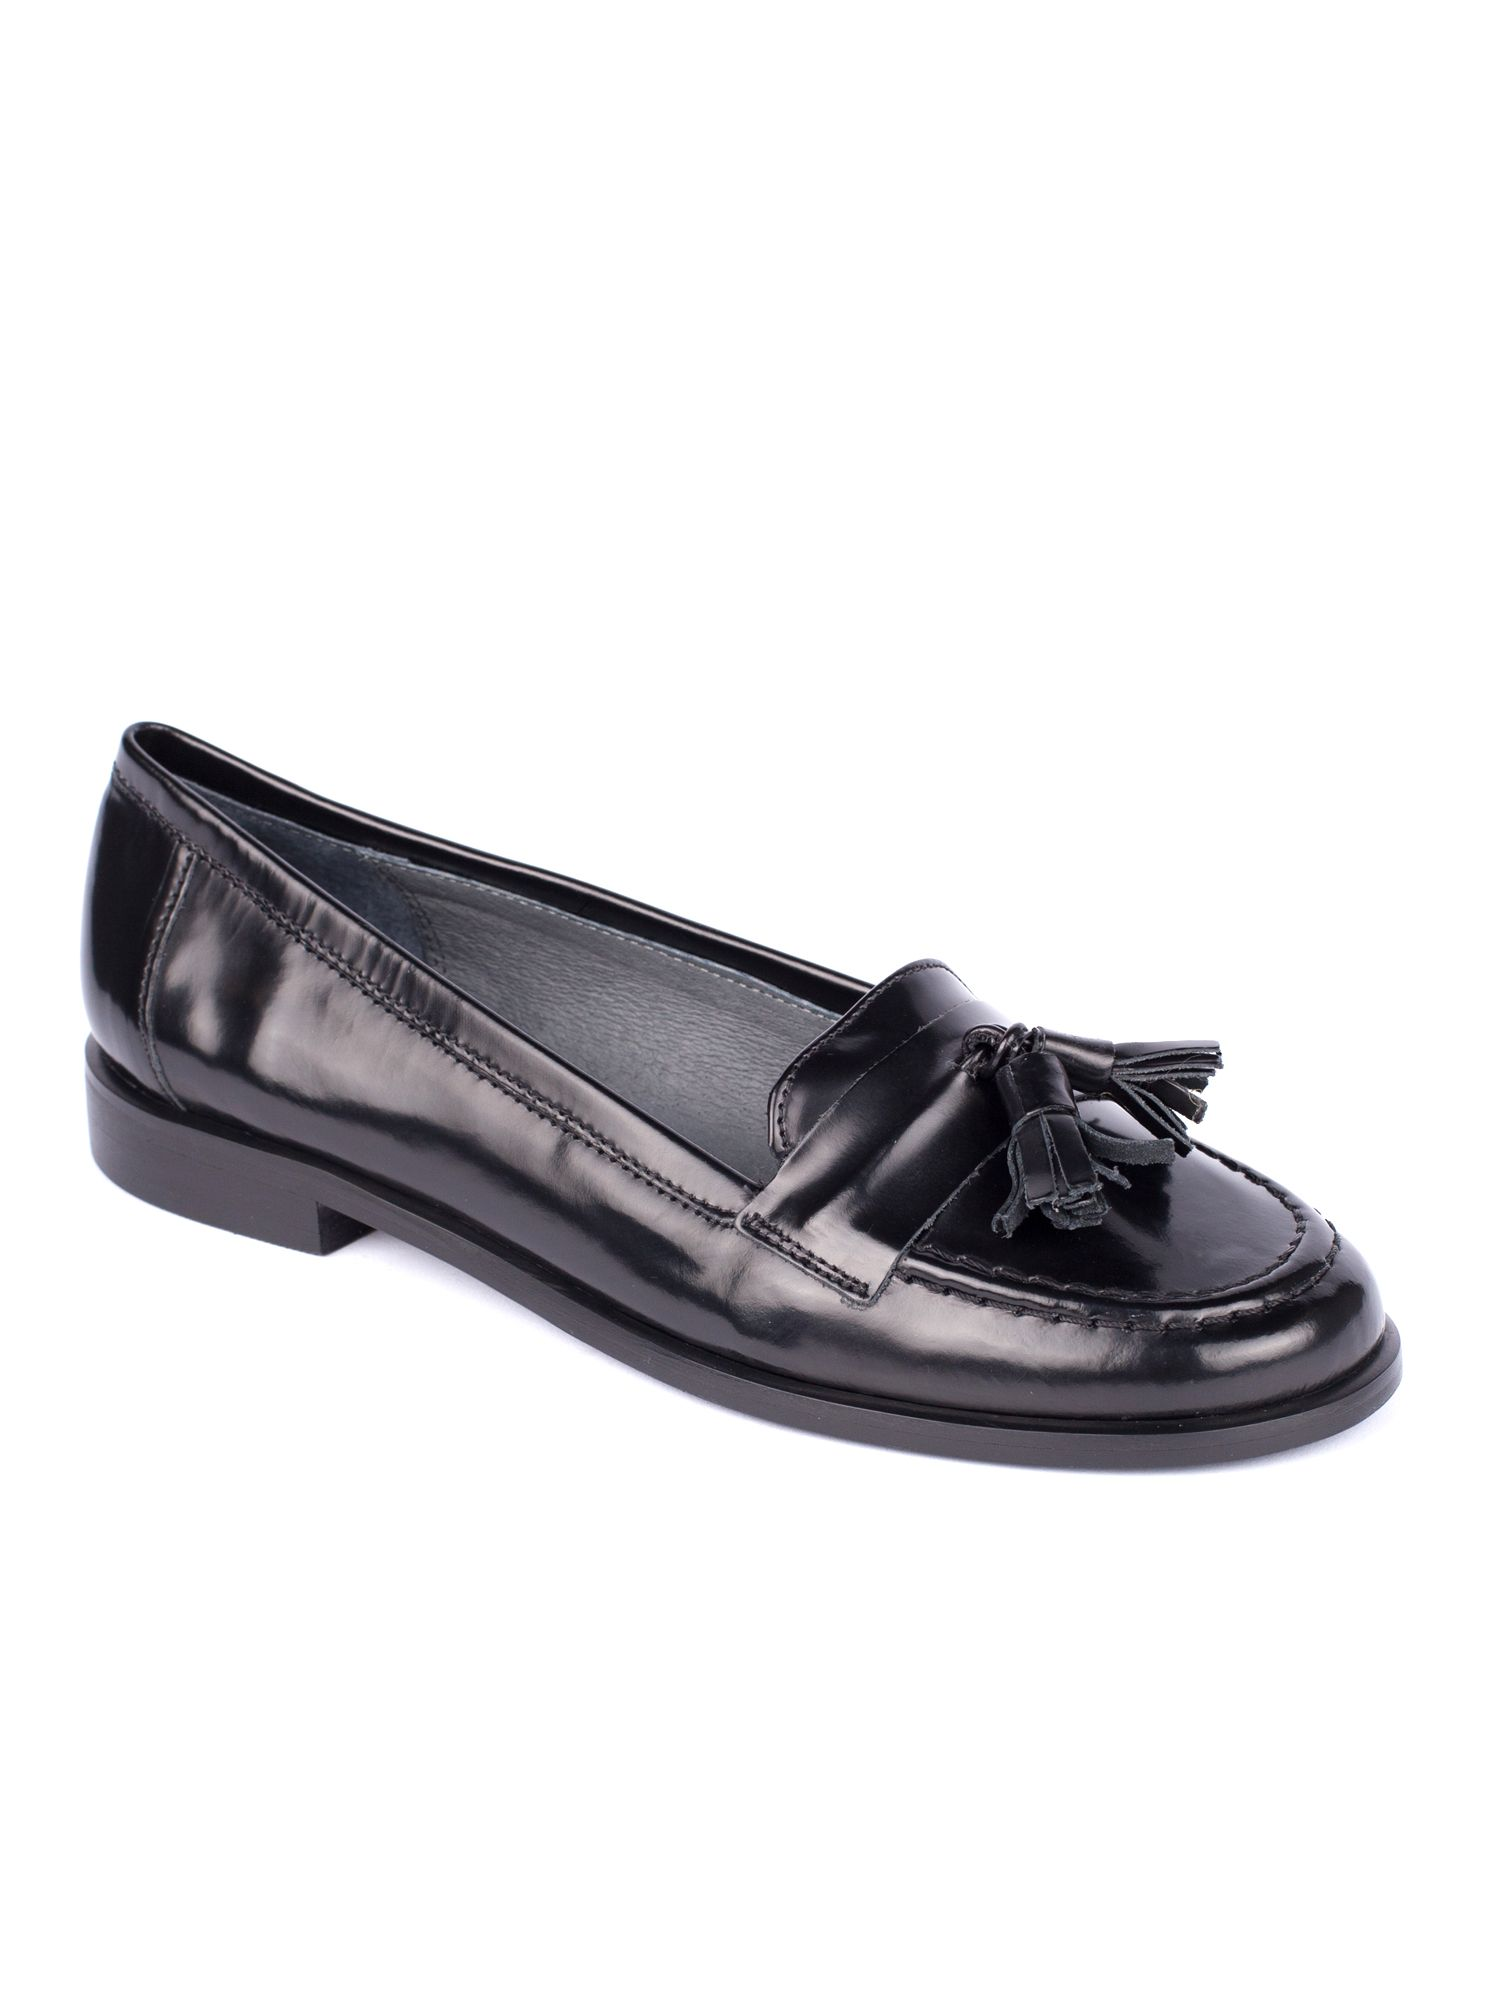 Gaelic 2 Smart Flat Shoe